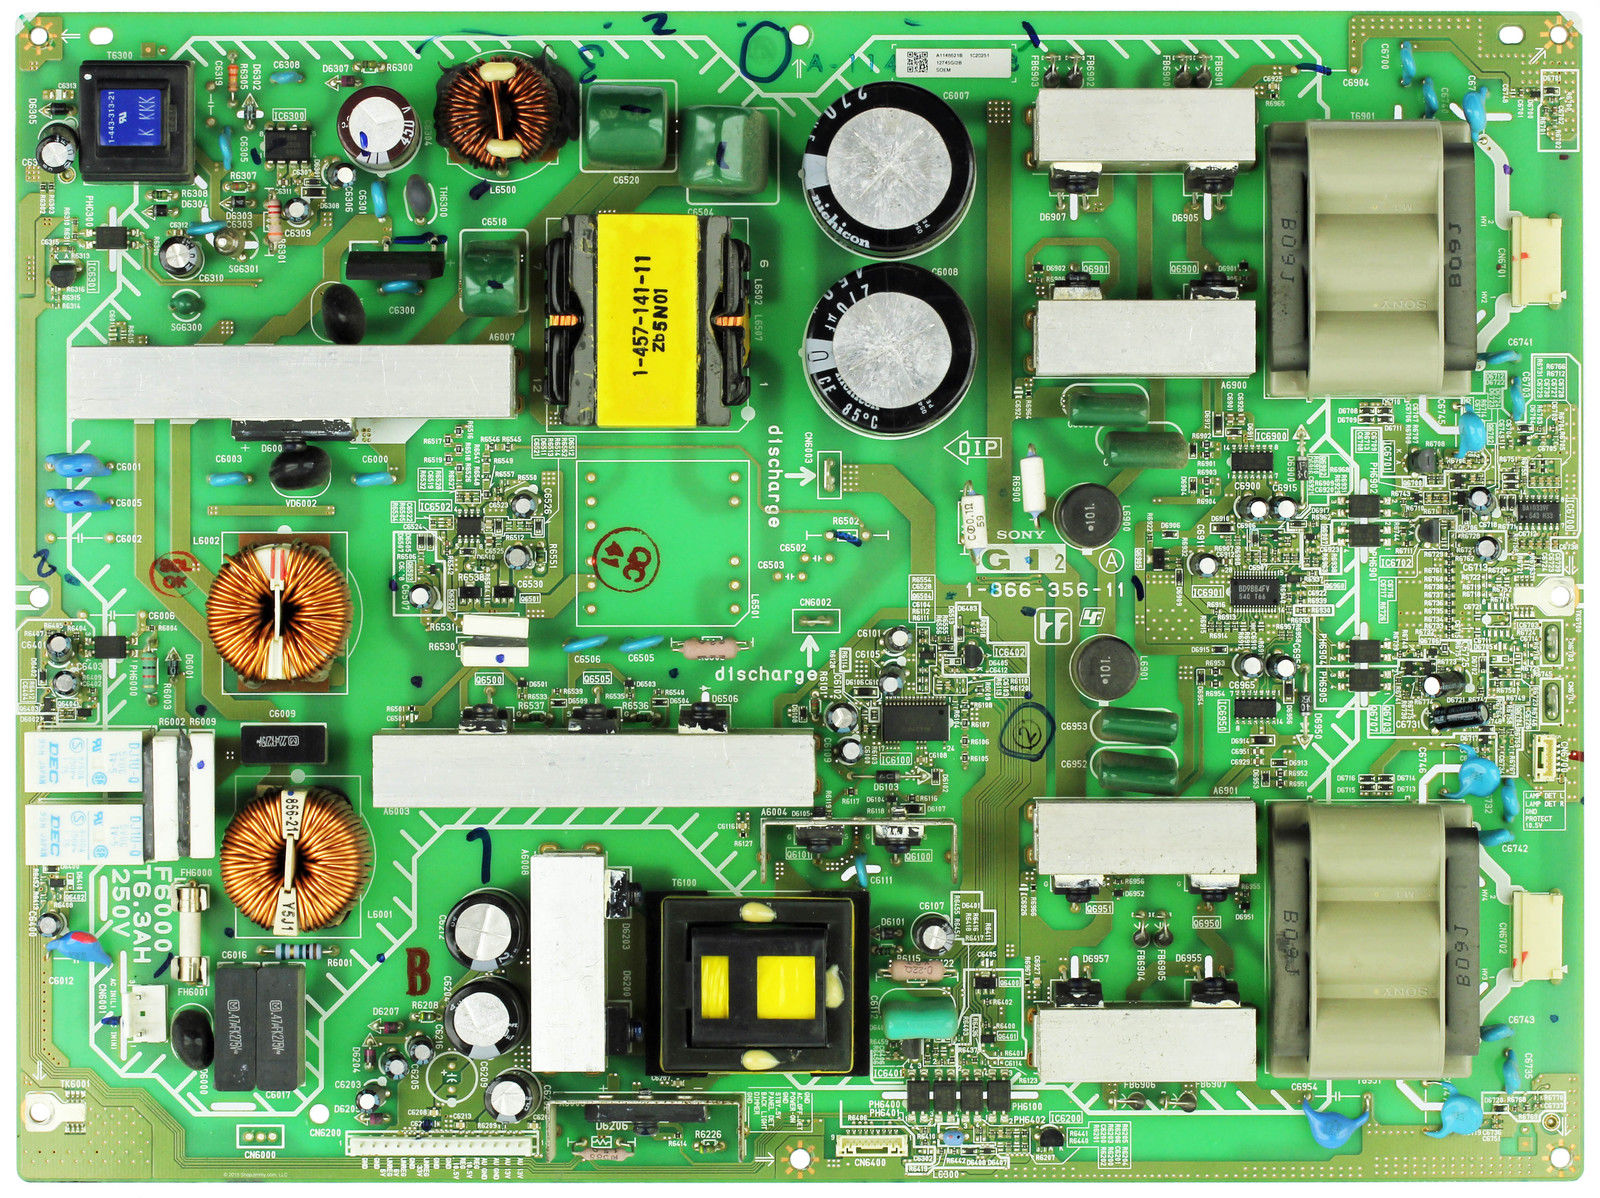 Sony A-1148-621-B (1-866-356-11) GI2 Board for KDL-V40XBR1